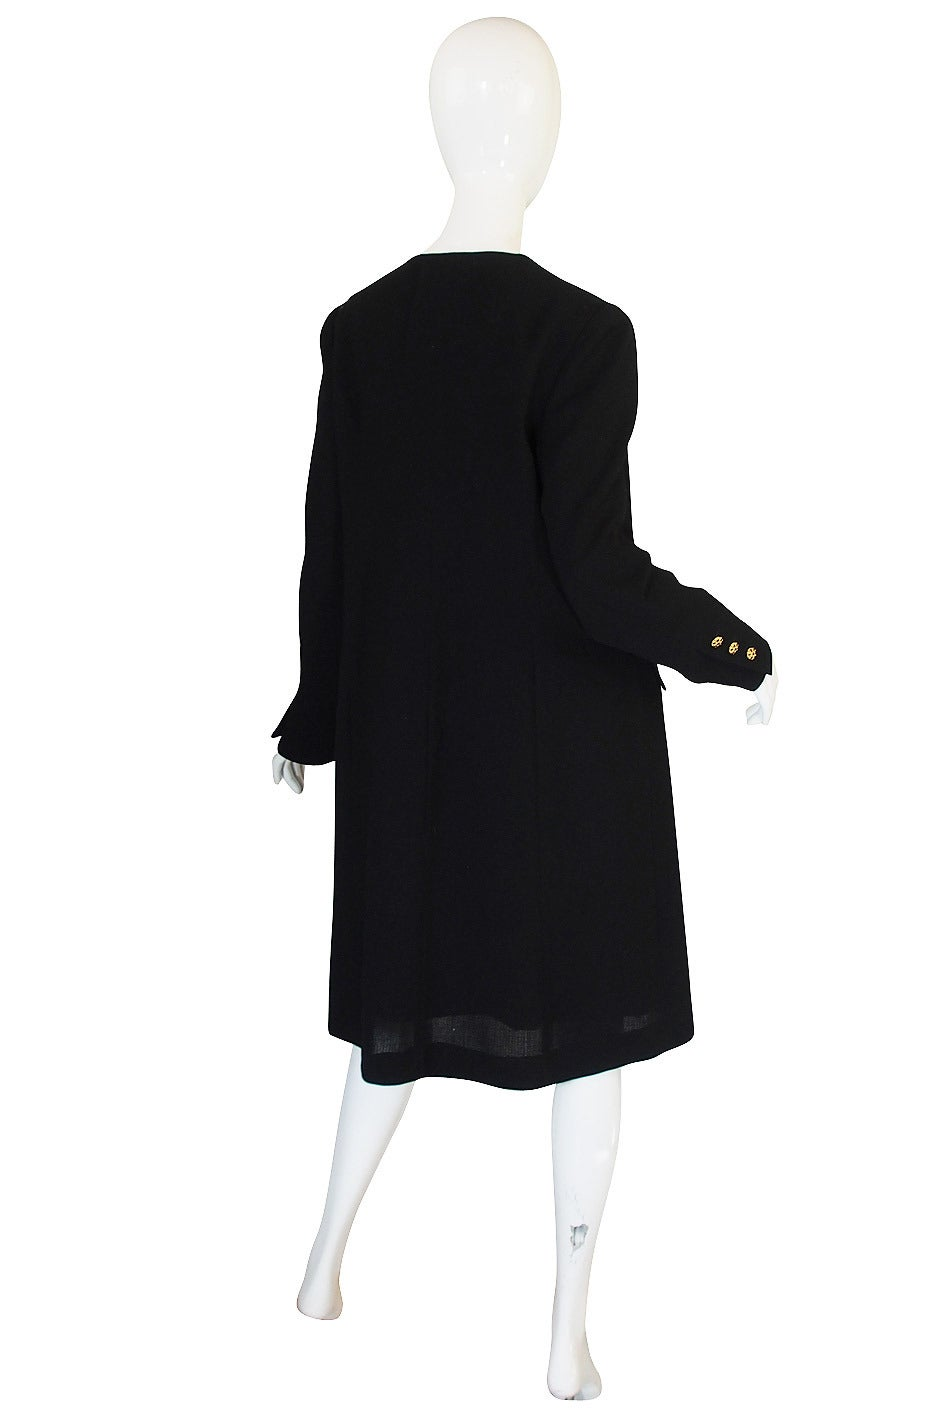 96A Runway Chanel Coat Dress w Cabochon Buttons 2